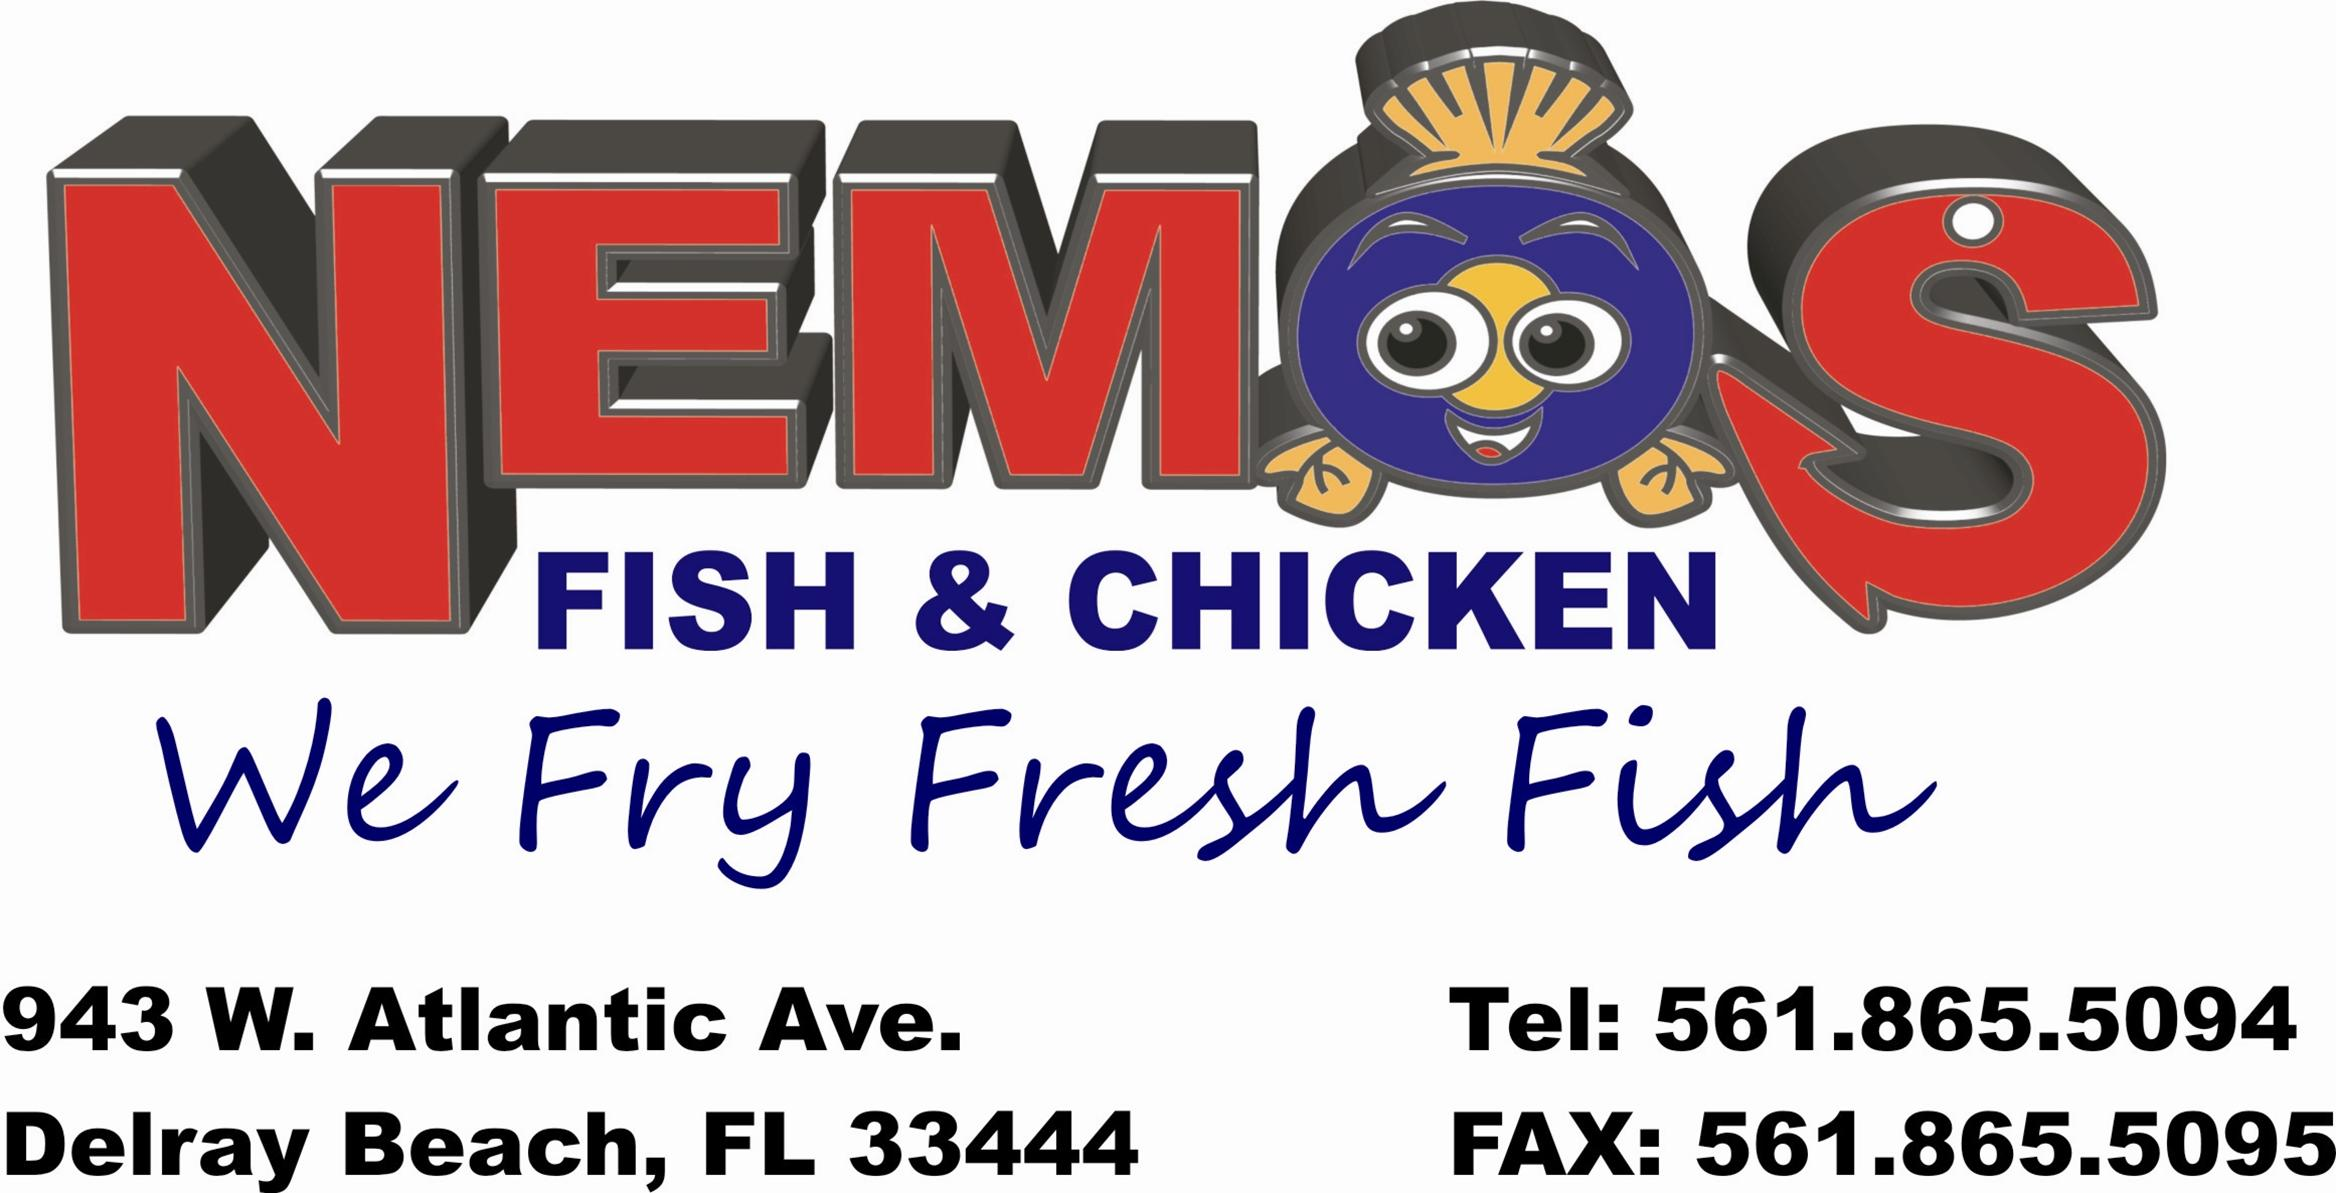 NEMOS Fish & Chicken